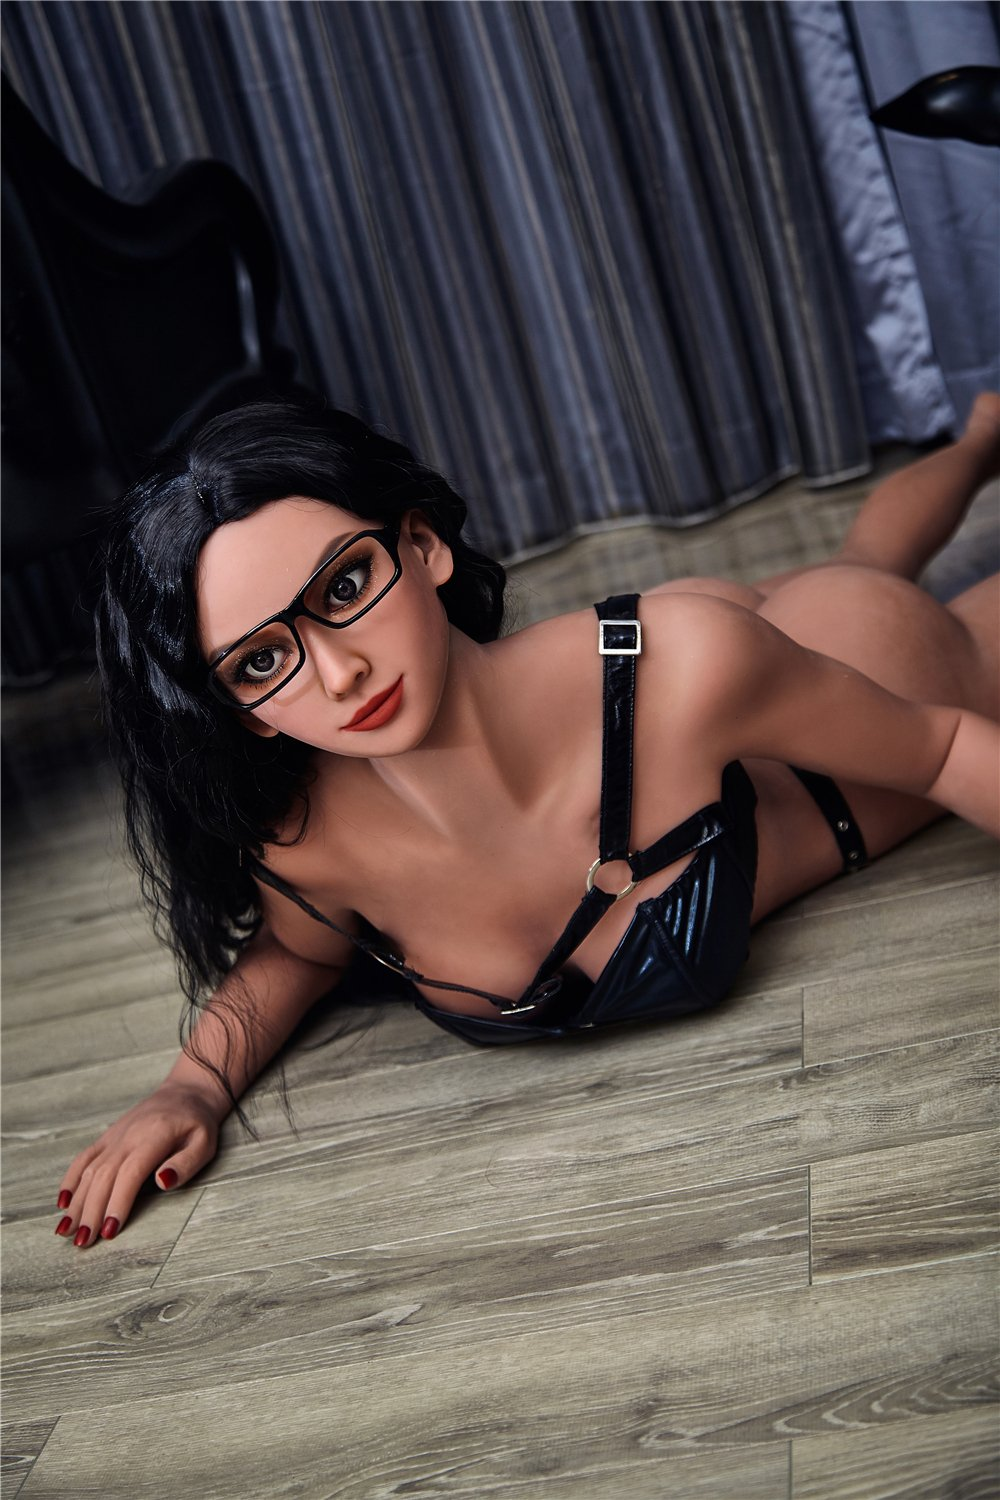 kathi 168cm black hair medium tits skinny flat chested tan skin tpe sex doll(11)